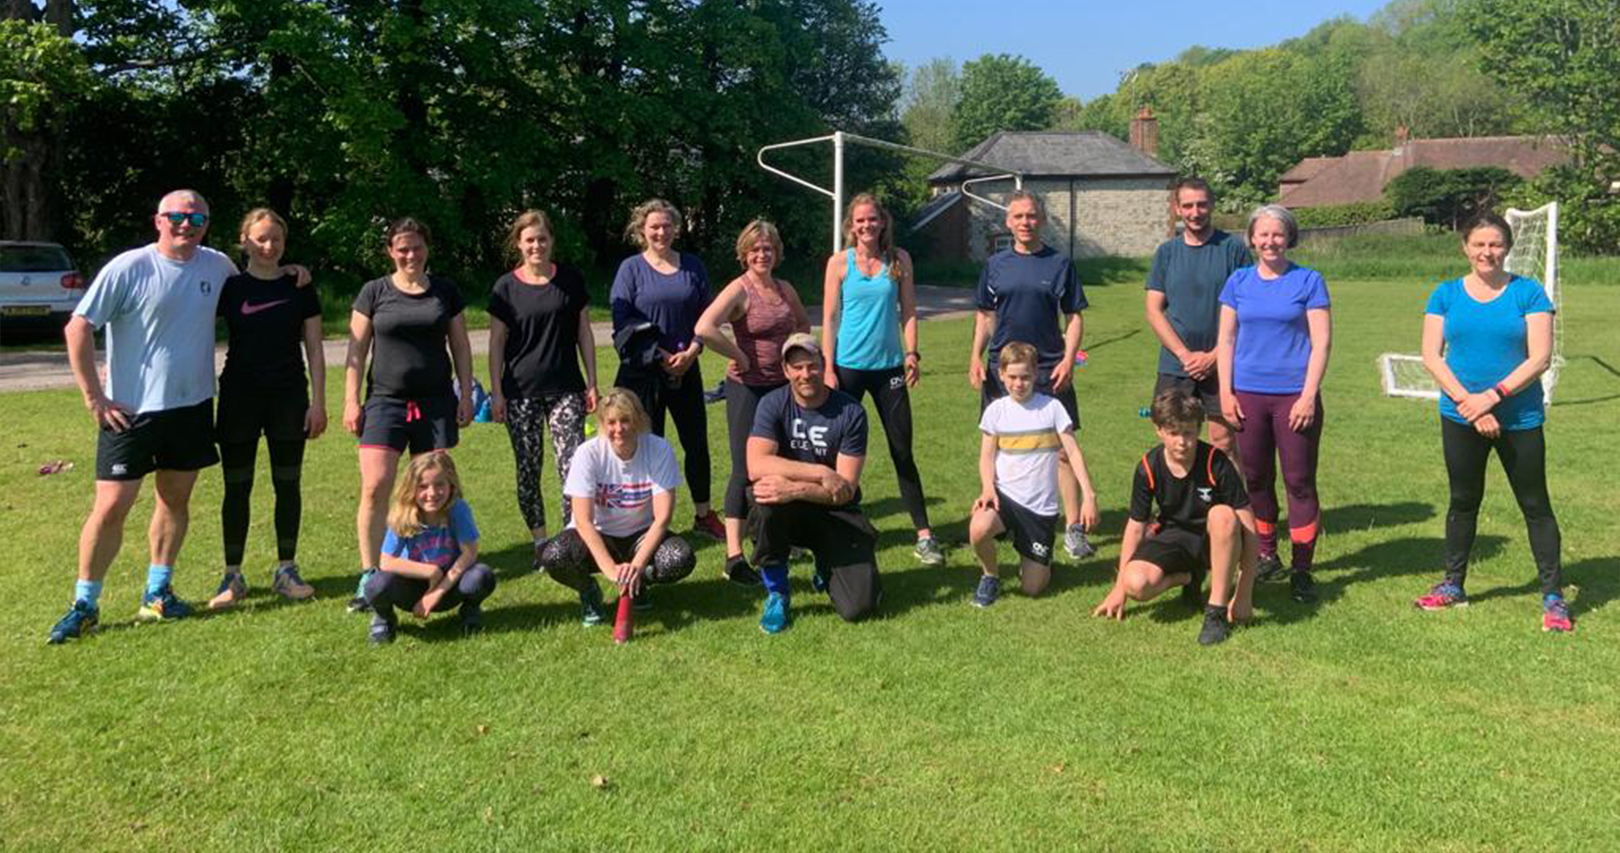 East Hampshire's New Fitness Community